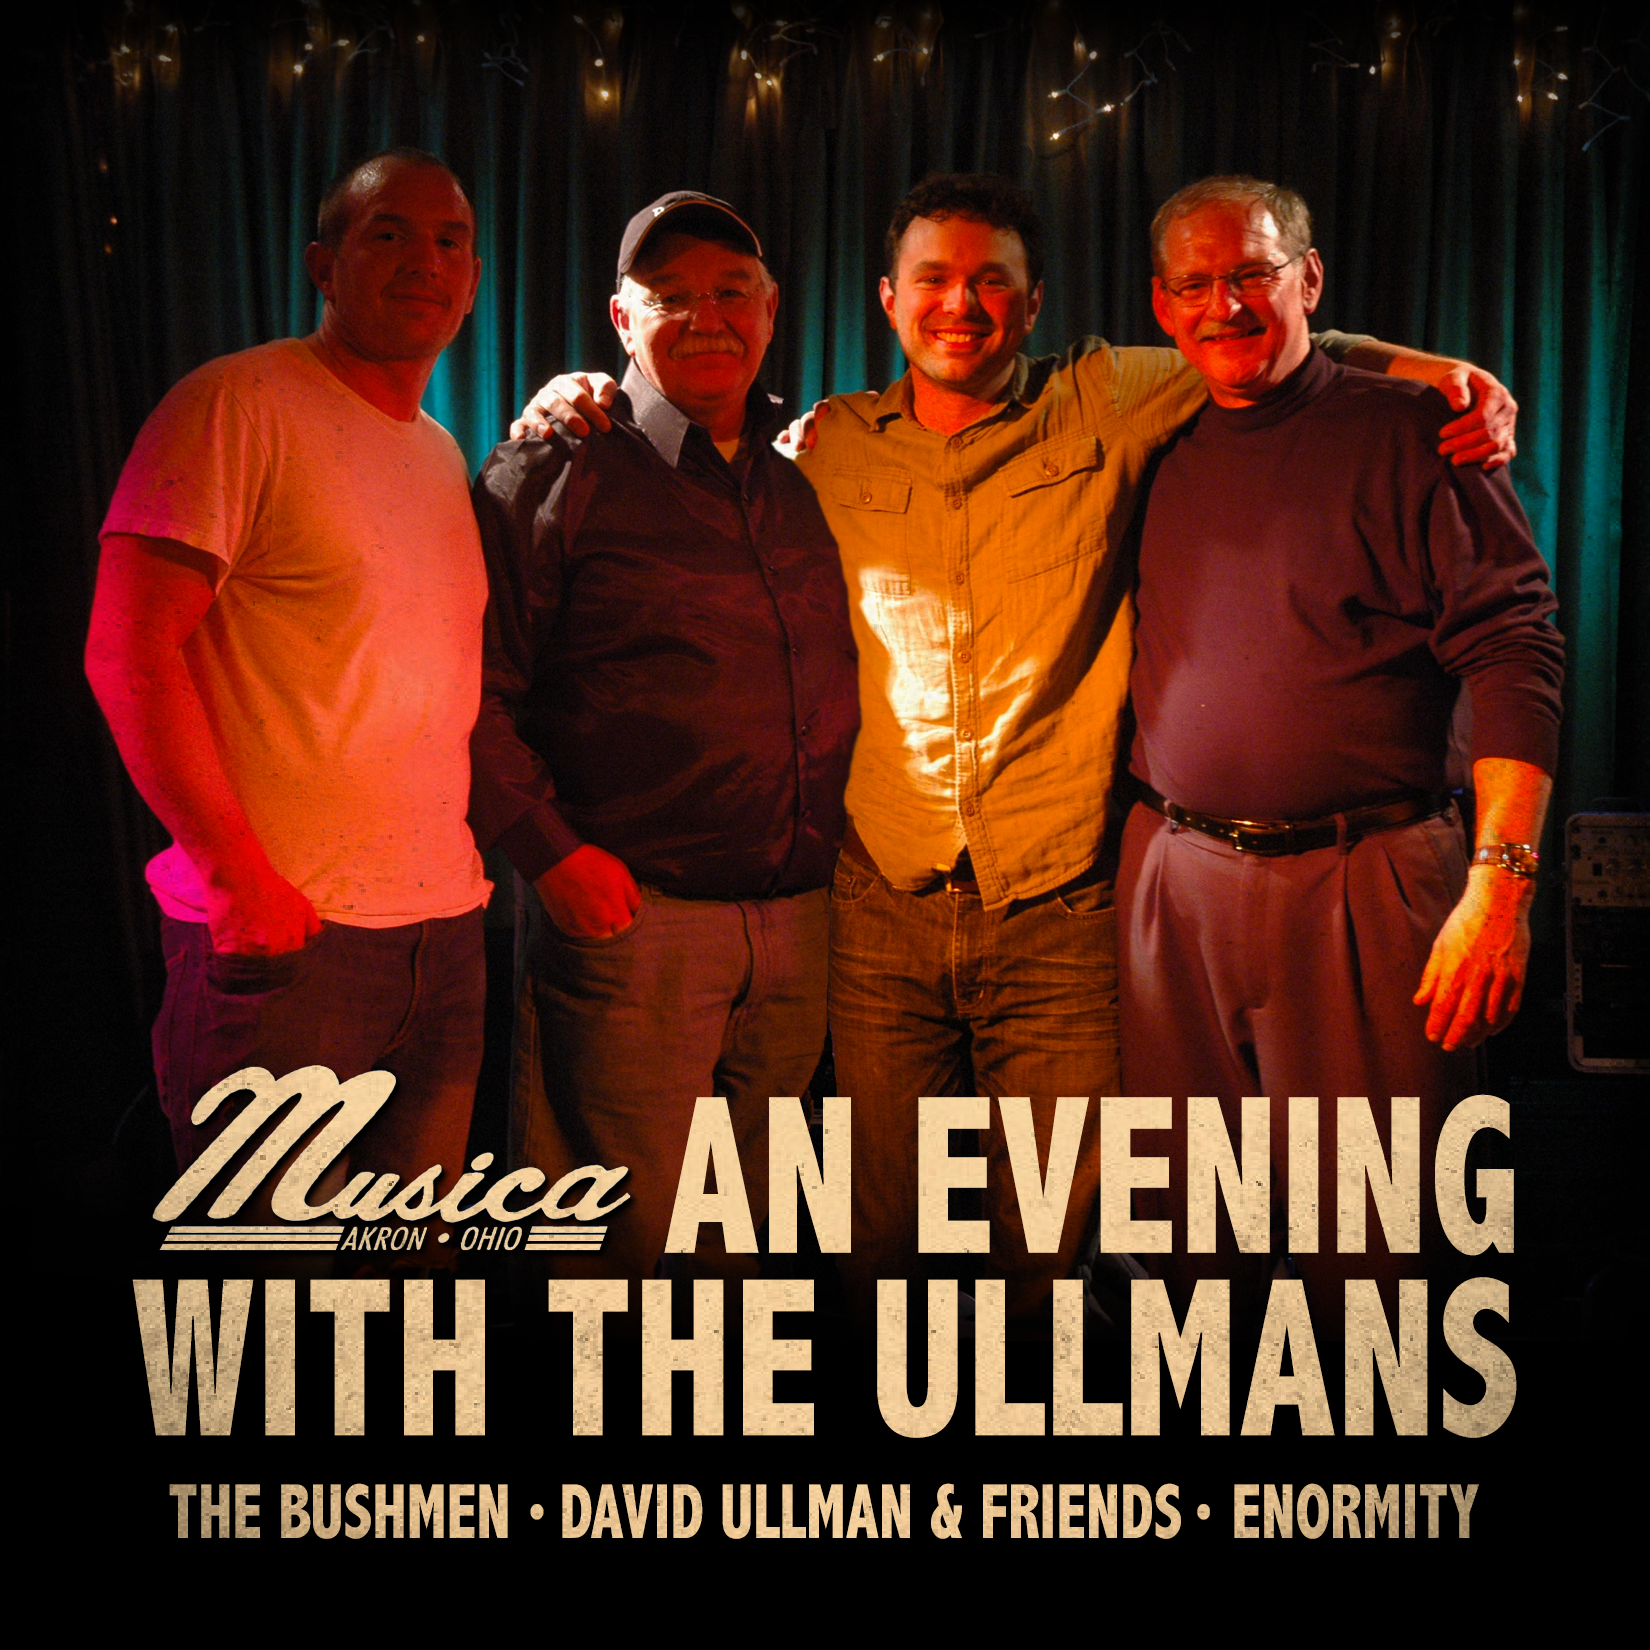 An Evening With The Ullmans Cover Image